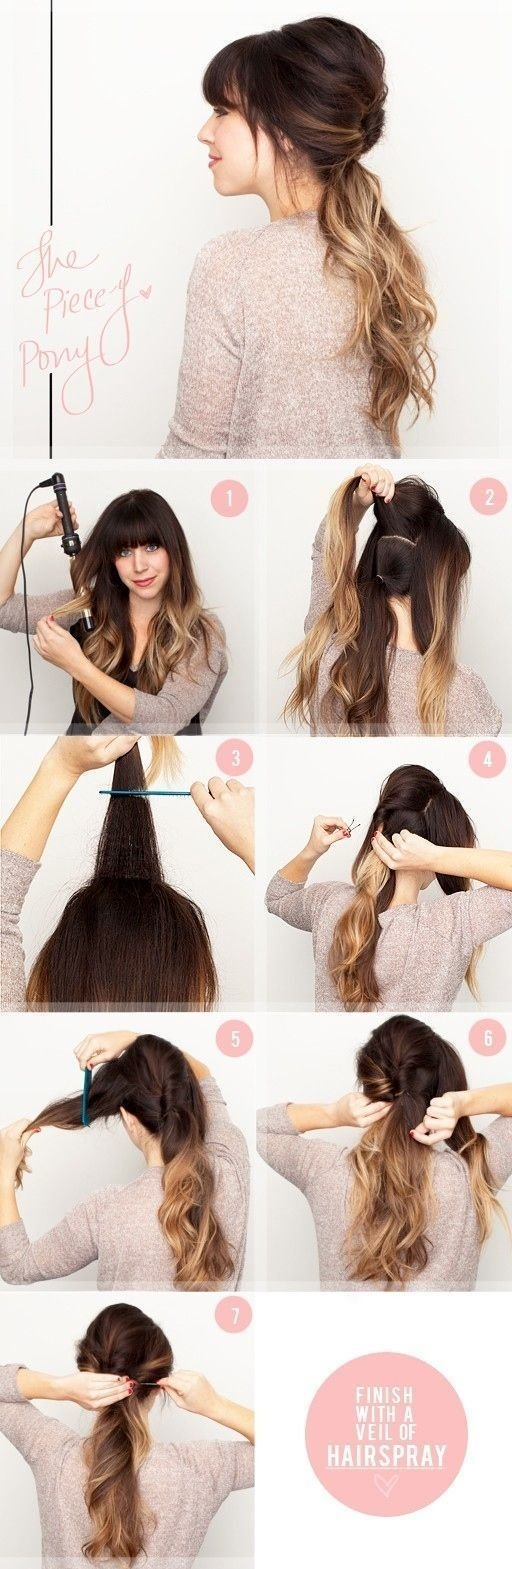 The Best 21 Awesome Creative Diy Hairstyles Illustrated In Pictures